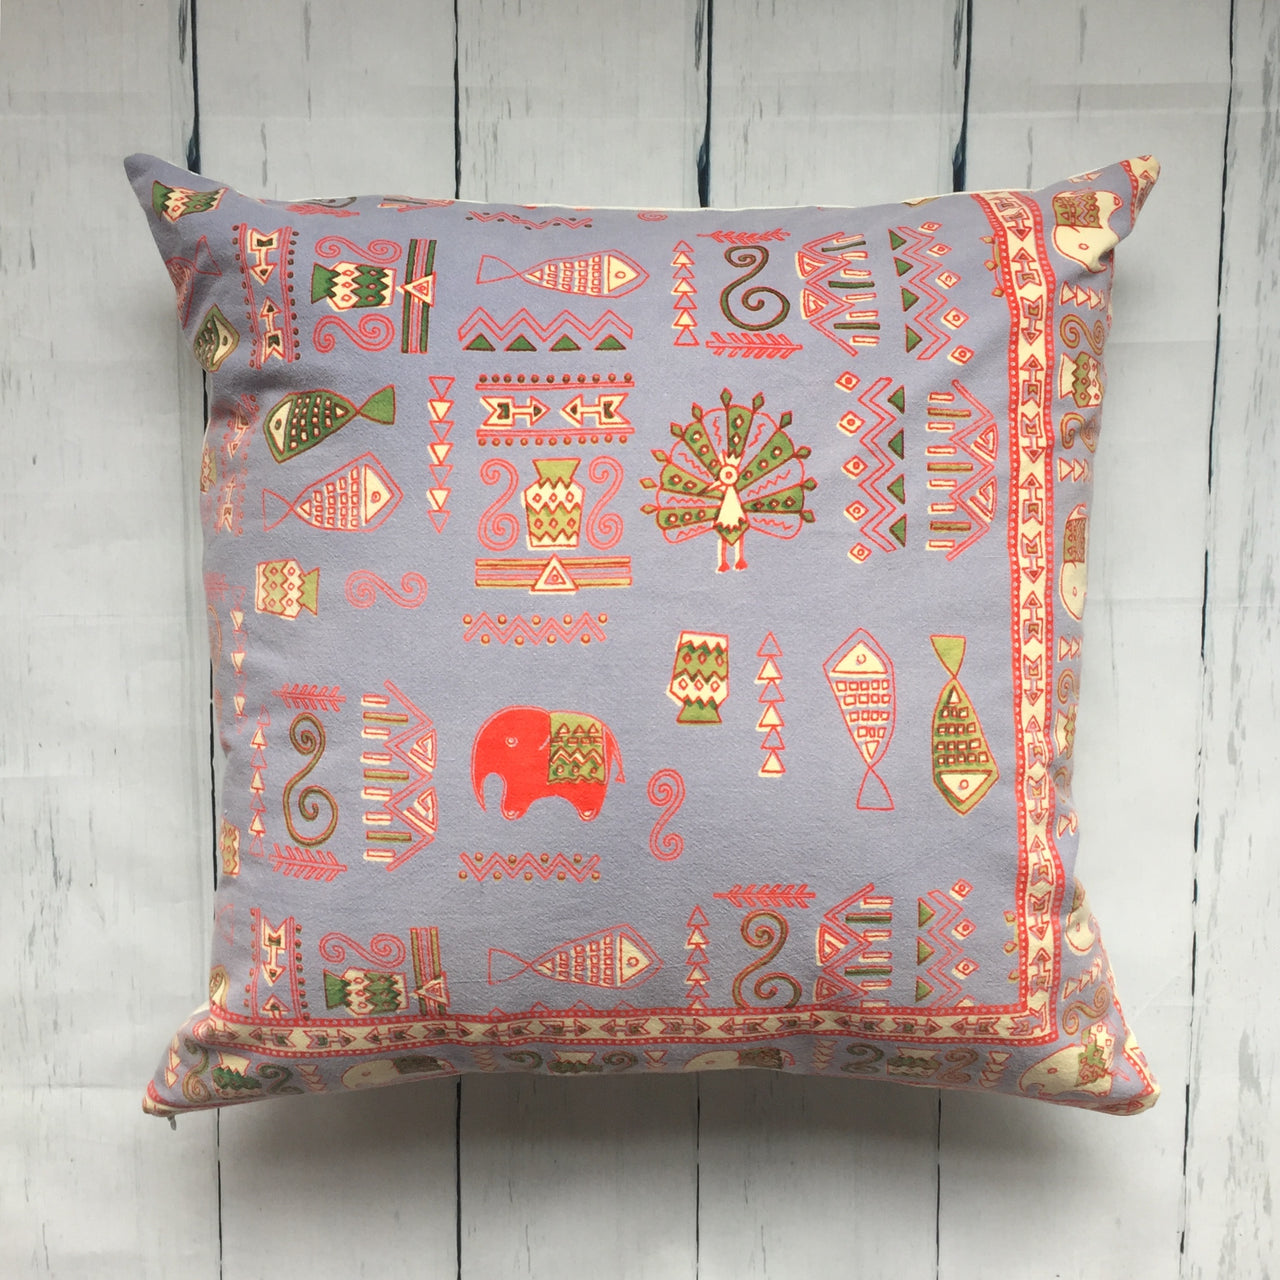 eco-friendly-sustainable-repurposed-handmade-home-decor-20-inch-pillow